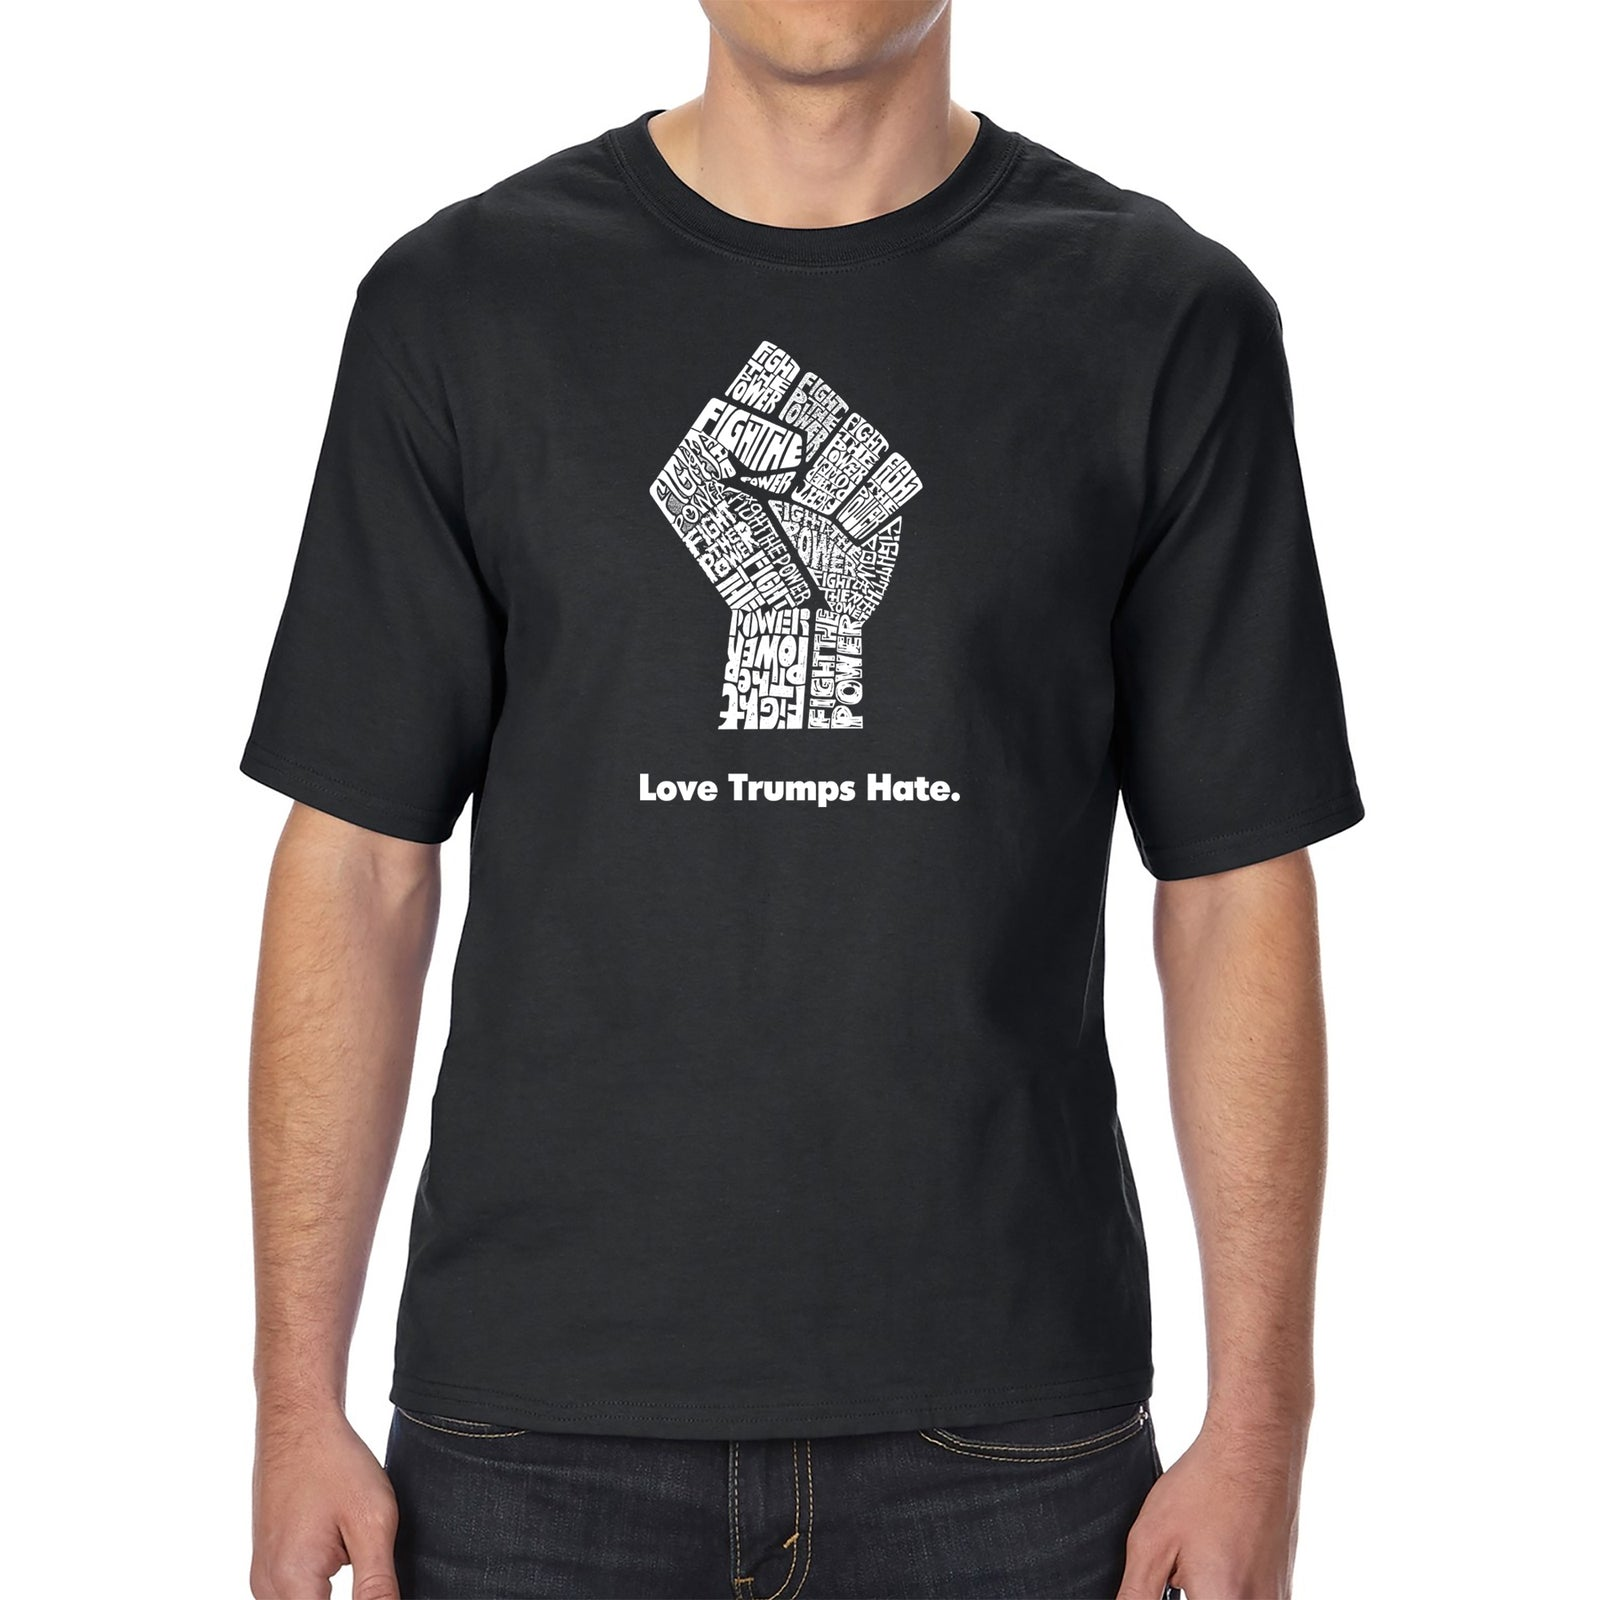 Men's Tall and Long Word Art T-shirt - Love Trumps Hate Fist